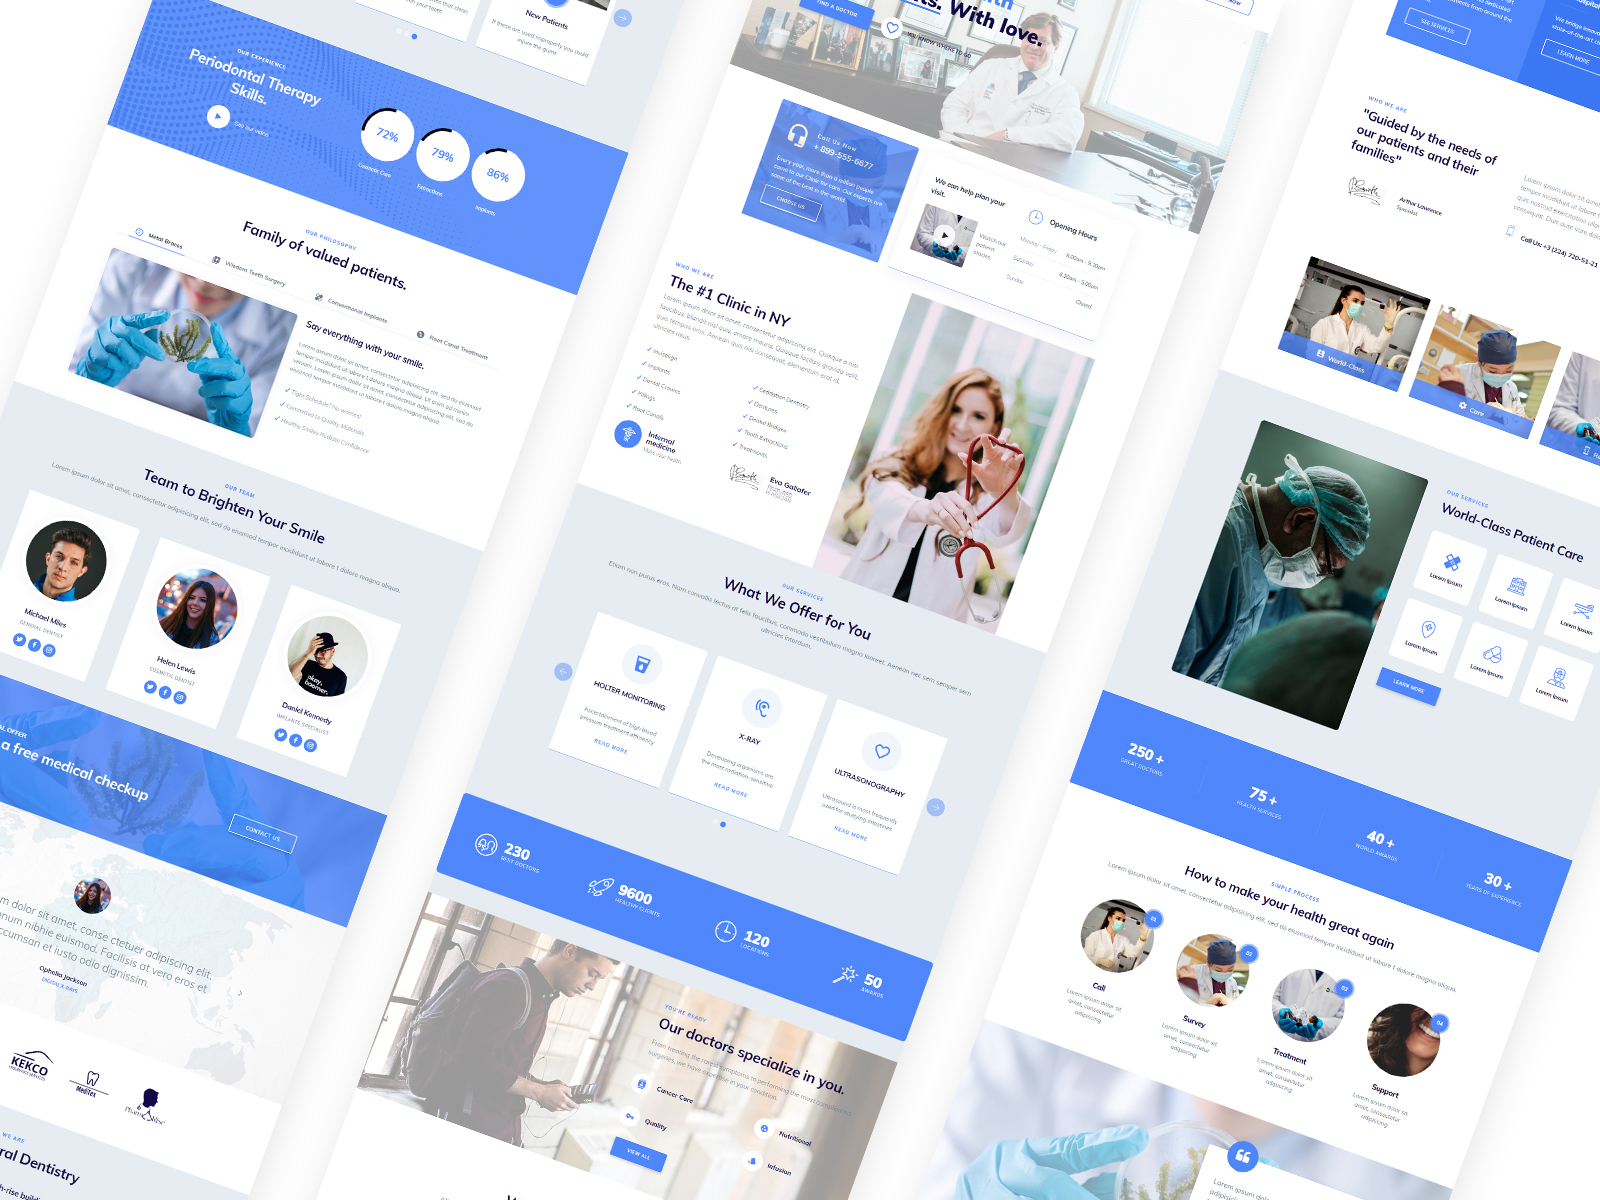 Mobirise Free Website Builder Software Medicalm4 By Mobirise Builder On Dribbble